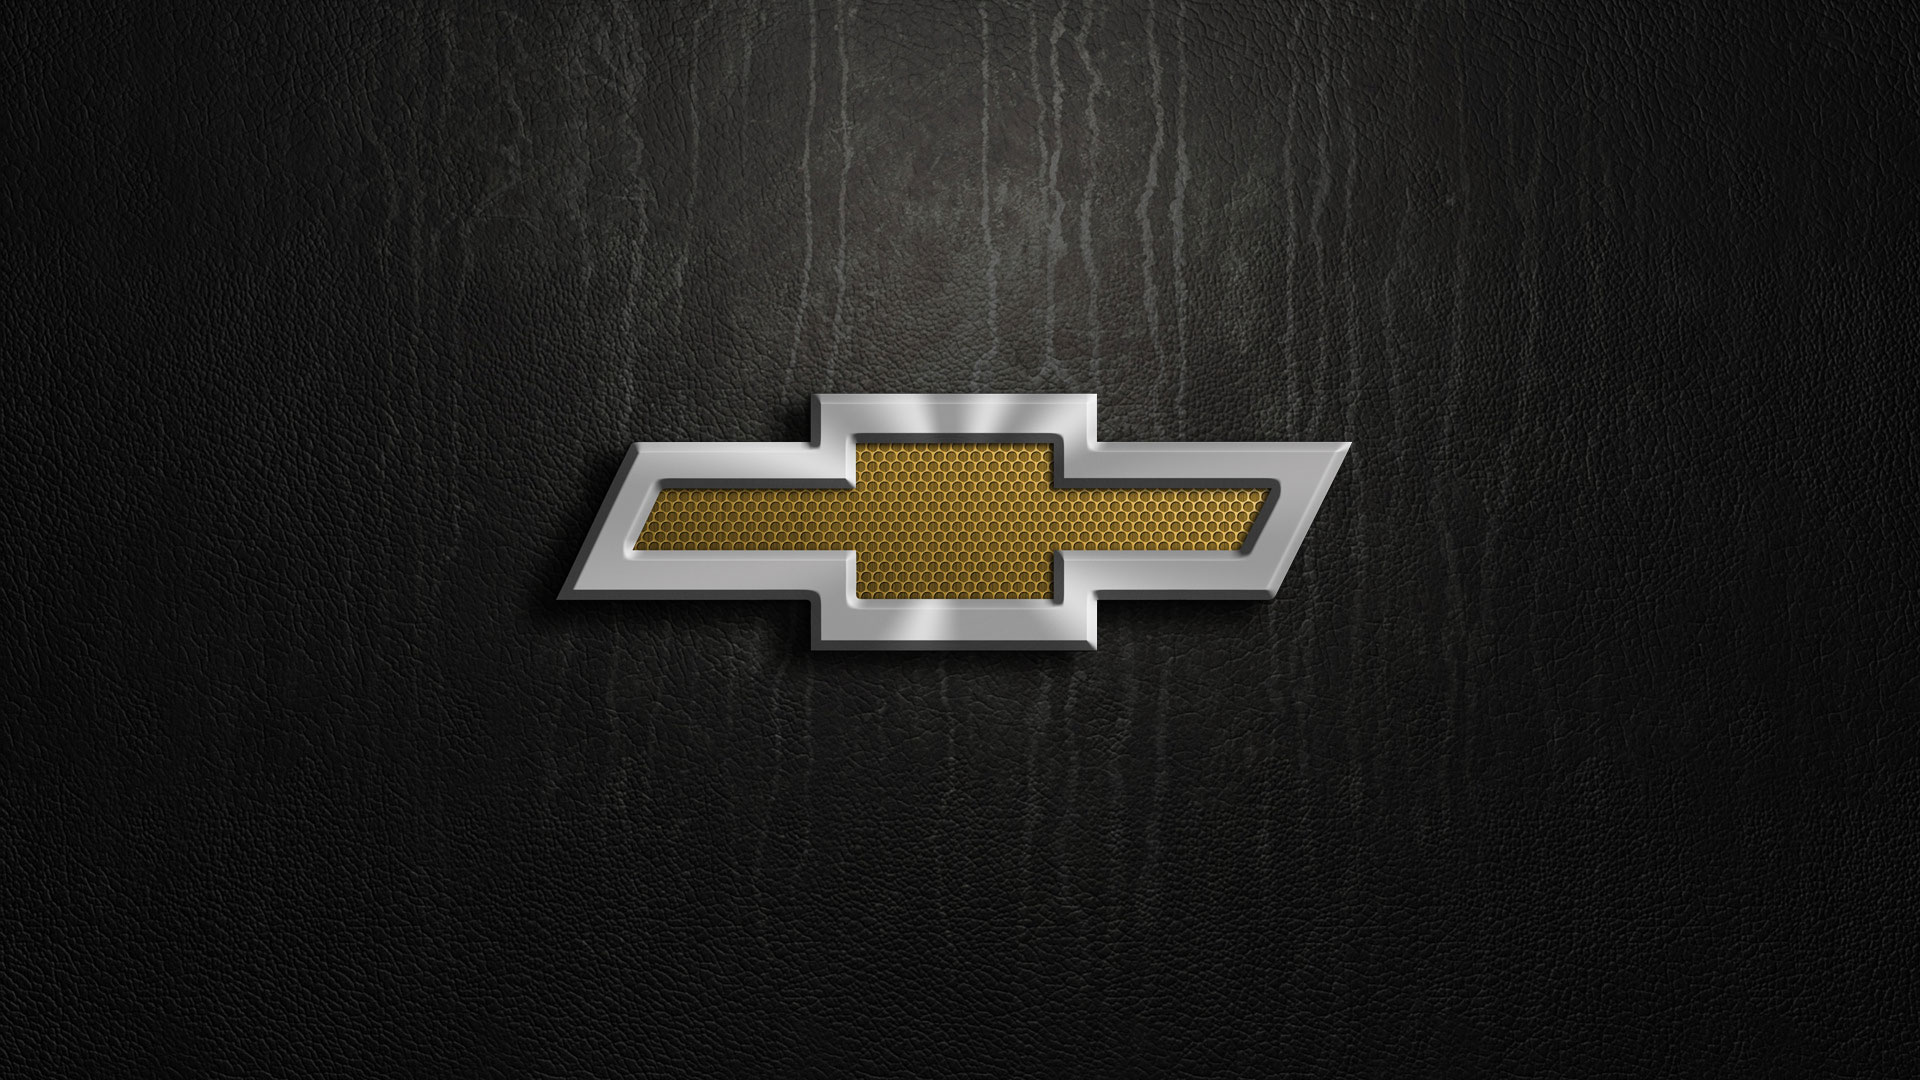 Wallpaper 1 of 1   Chevrolet Leather 2014 Logo HD Wallpapers 1920x1080